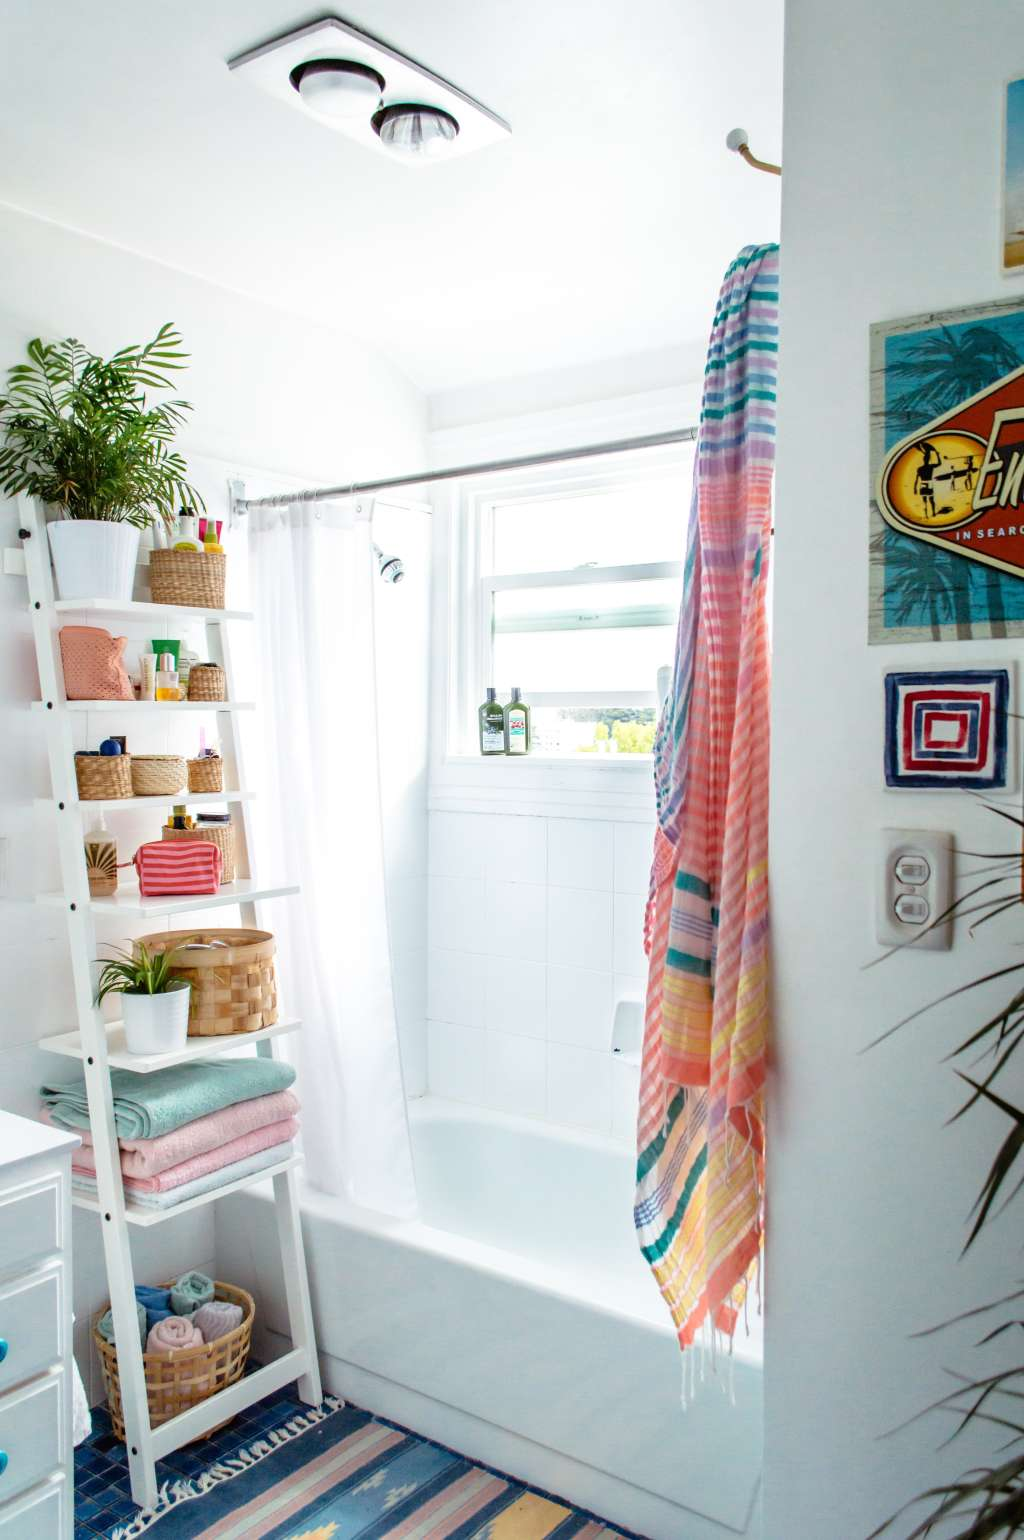 Best Step Stools and Ladders to Help You Reach New Heights